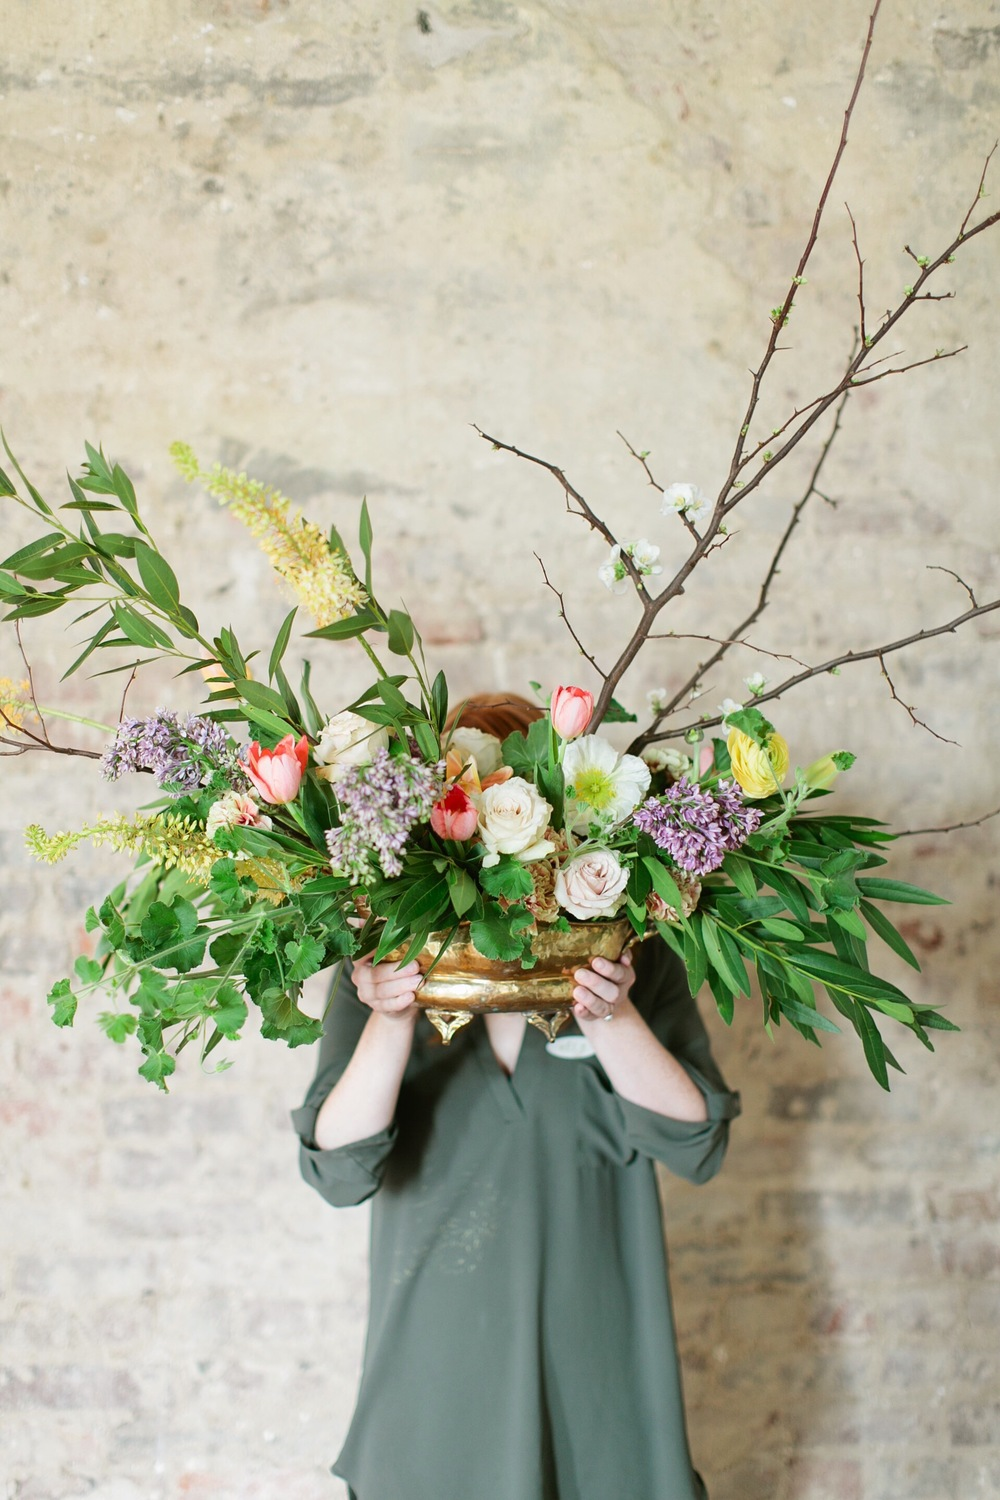 Floral arrangement inspiration | Nashville, Tennessee | The School of Styling - A three-day hands-on for creative entrepreneurs. http://www.theschoolofstyling.com